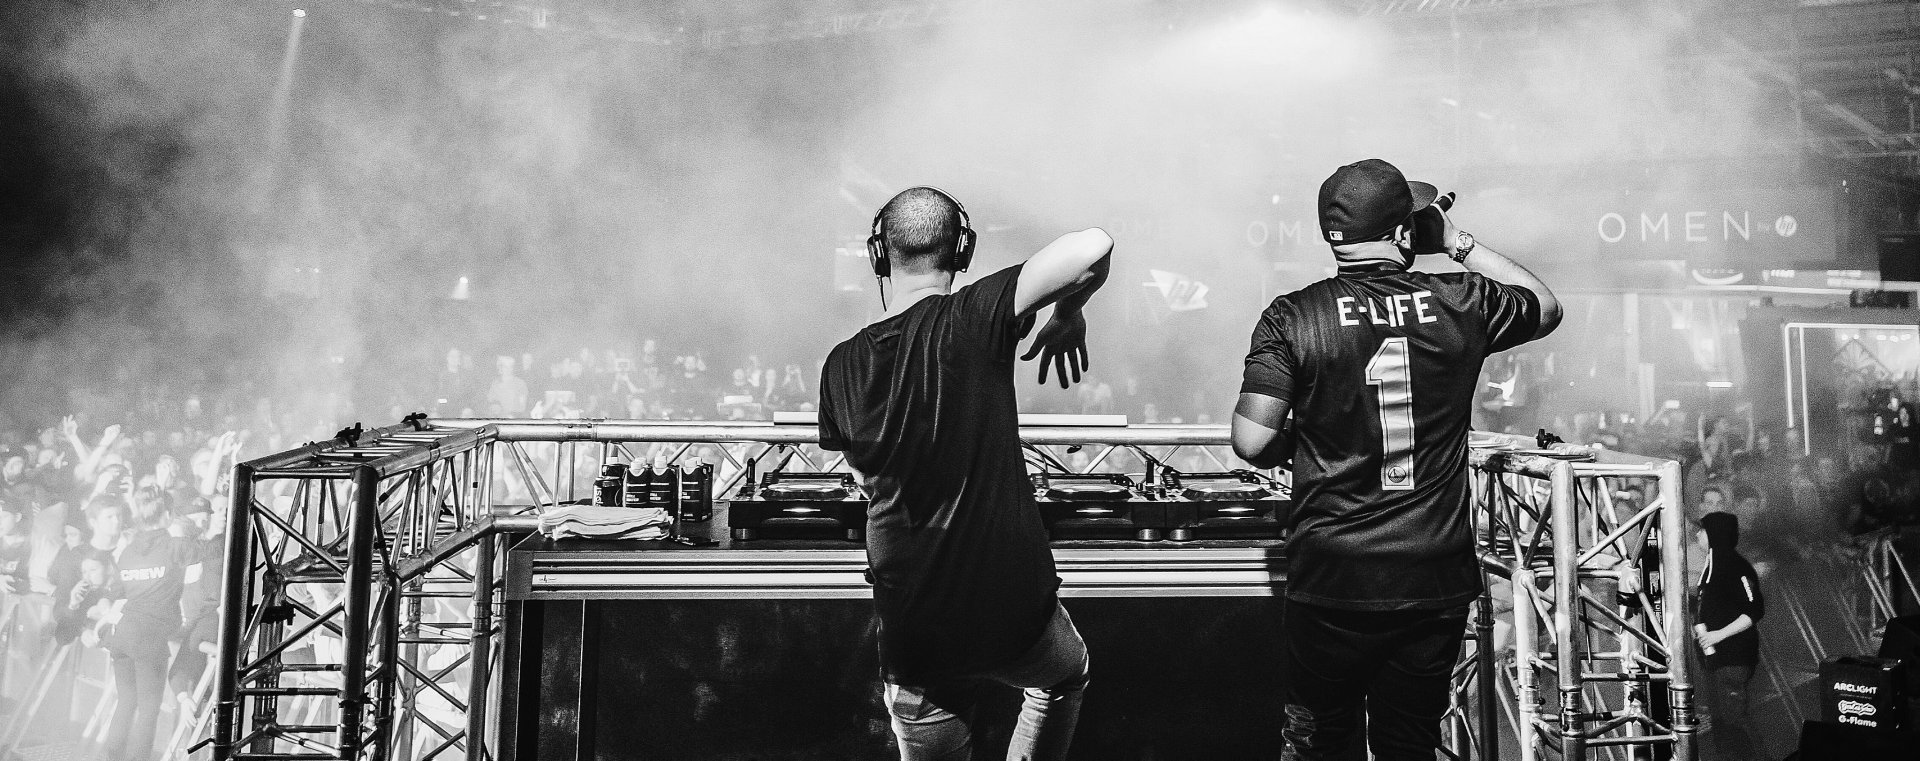 Wildstylez @ DreamHack, Sweden 2016  DISABLE